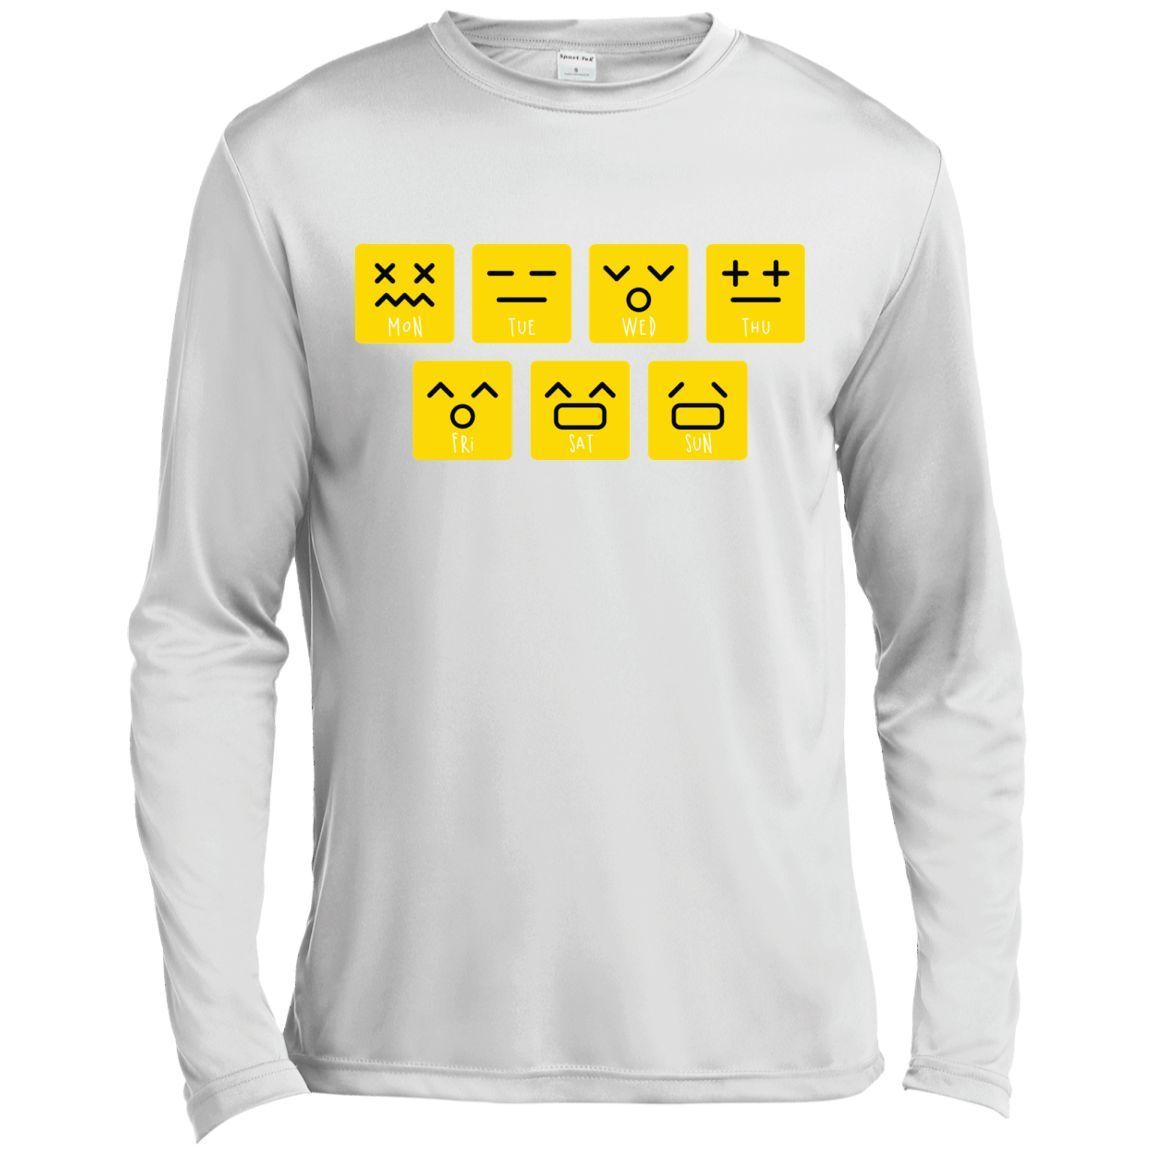 39ce5fbc Emoji T shirt Love Your Emoticon Shirt 7 Days A Week Long Sleeve Moisture  Absorbing Shirt